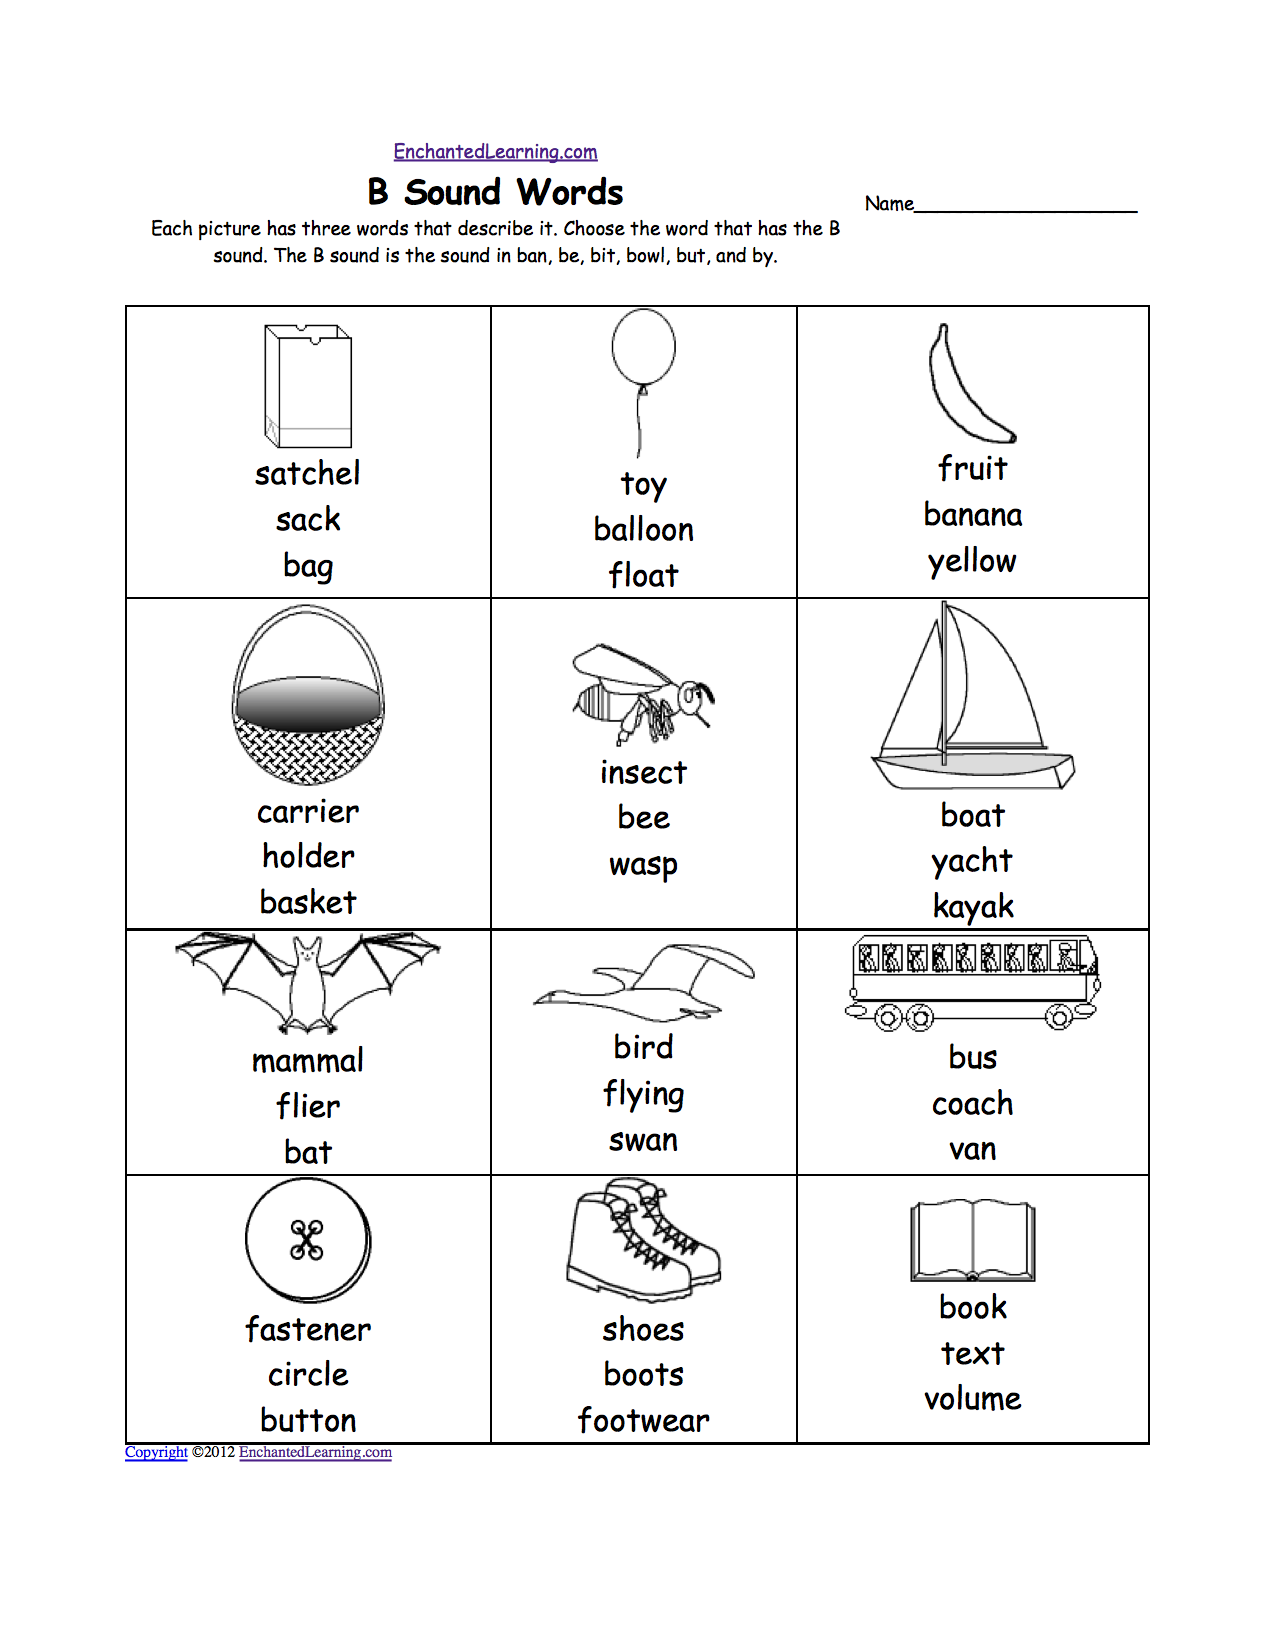 Weirdmailus  Ravishing Phonics Worksheets Multiple Choice Worksheets To Print  With Excellent Quotbquot Sound Phonics Worksheet Multiple Choice Each Picture Has Three Words That Describe It Choose The Word That Has A Quotbquot Sound The Quotbquot Sound Is The Sound  With Delightful Perimeter And Area Worksheets Ks Also Worksheets On Polynomials In Addition Story Writing Worksheets For Grade  And Solving Linear Inequalities In One Variable Worksheet As Well As Short E Sound Worksheets Additionally Following Oral Directions Worksheet From Enchantedlearningcom With Weirdmailus  Excellent Phonics Worksheets Multiple Choice Worksheets To Print  With Delightful Quotbquot Sound Phonics Worksheet Multiple Choice Each Picture Has Three Words That Describe It Choose The Word That Has A Quotbquot Sound The Quotbquot Sound Is The Sound  And Ravishing Perimeter And Area Worksheets Ks Also Worksheets On Polynomials In Addition Story Writing Worksheets For Grade  From Enchantedlearningcom